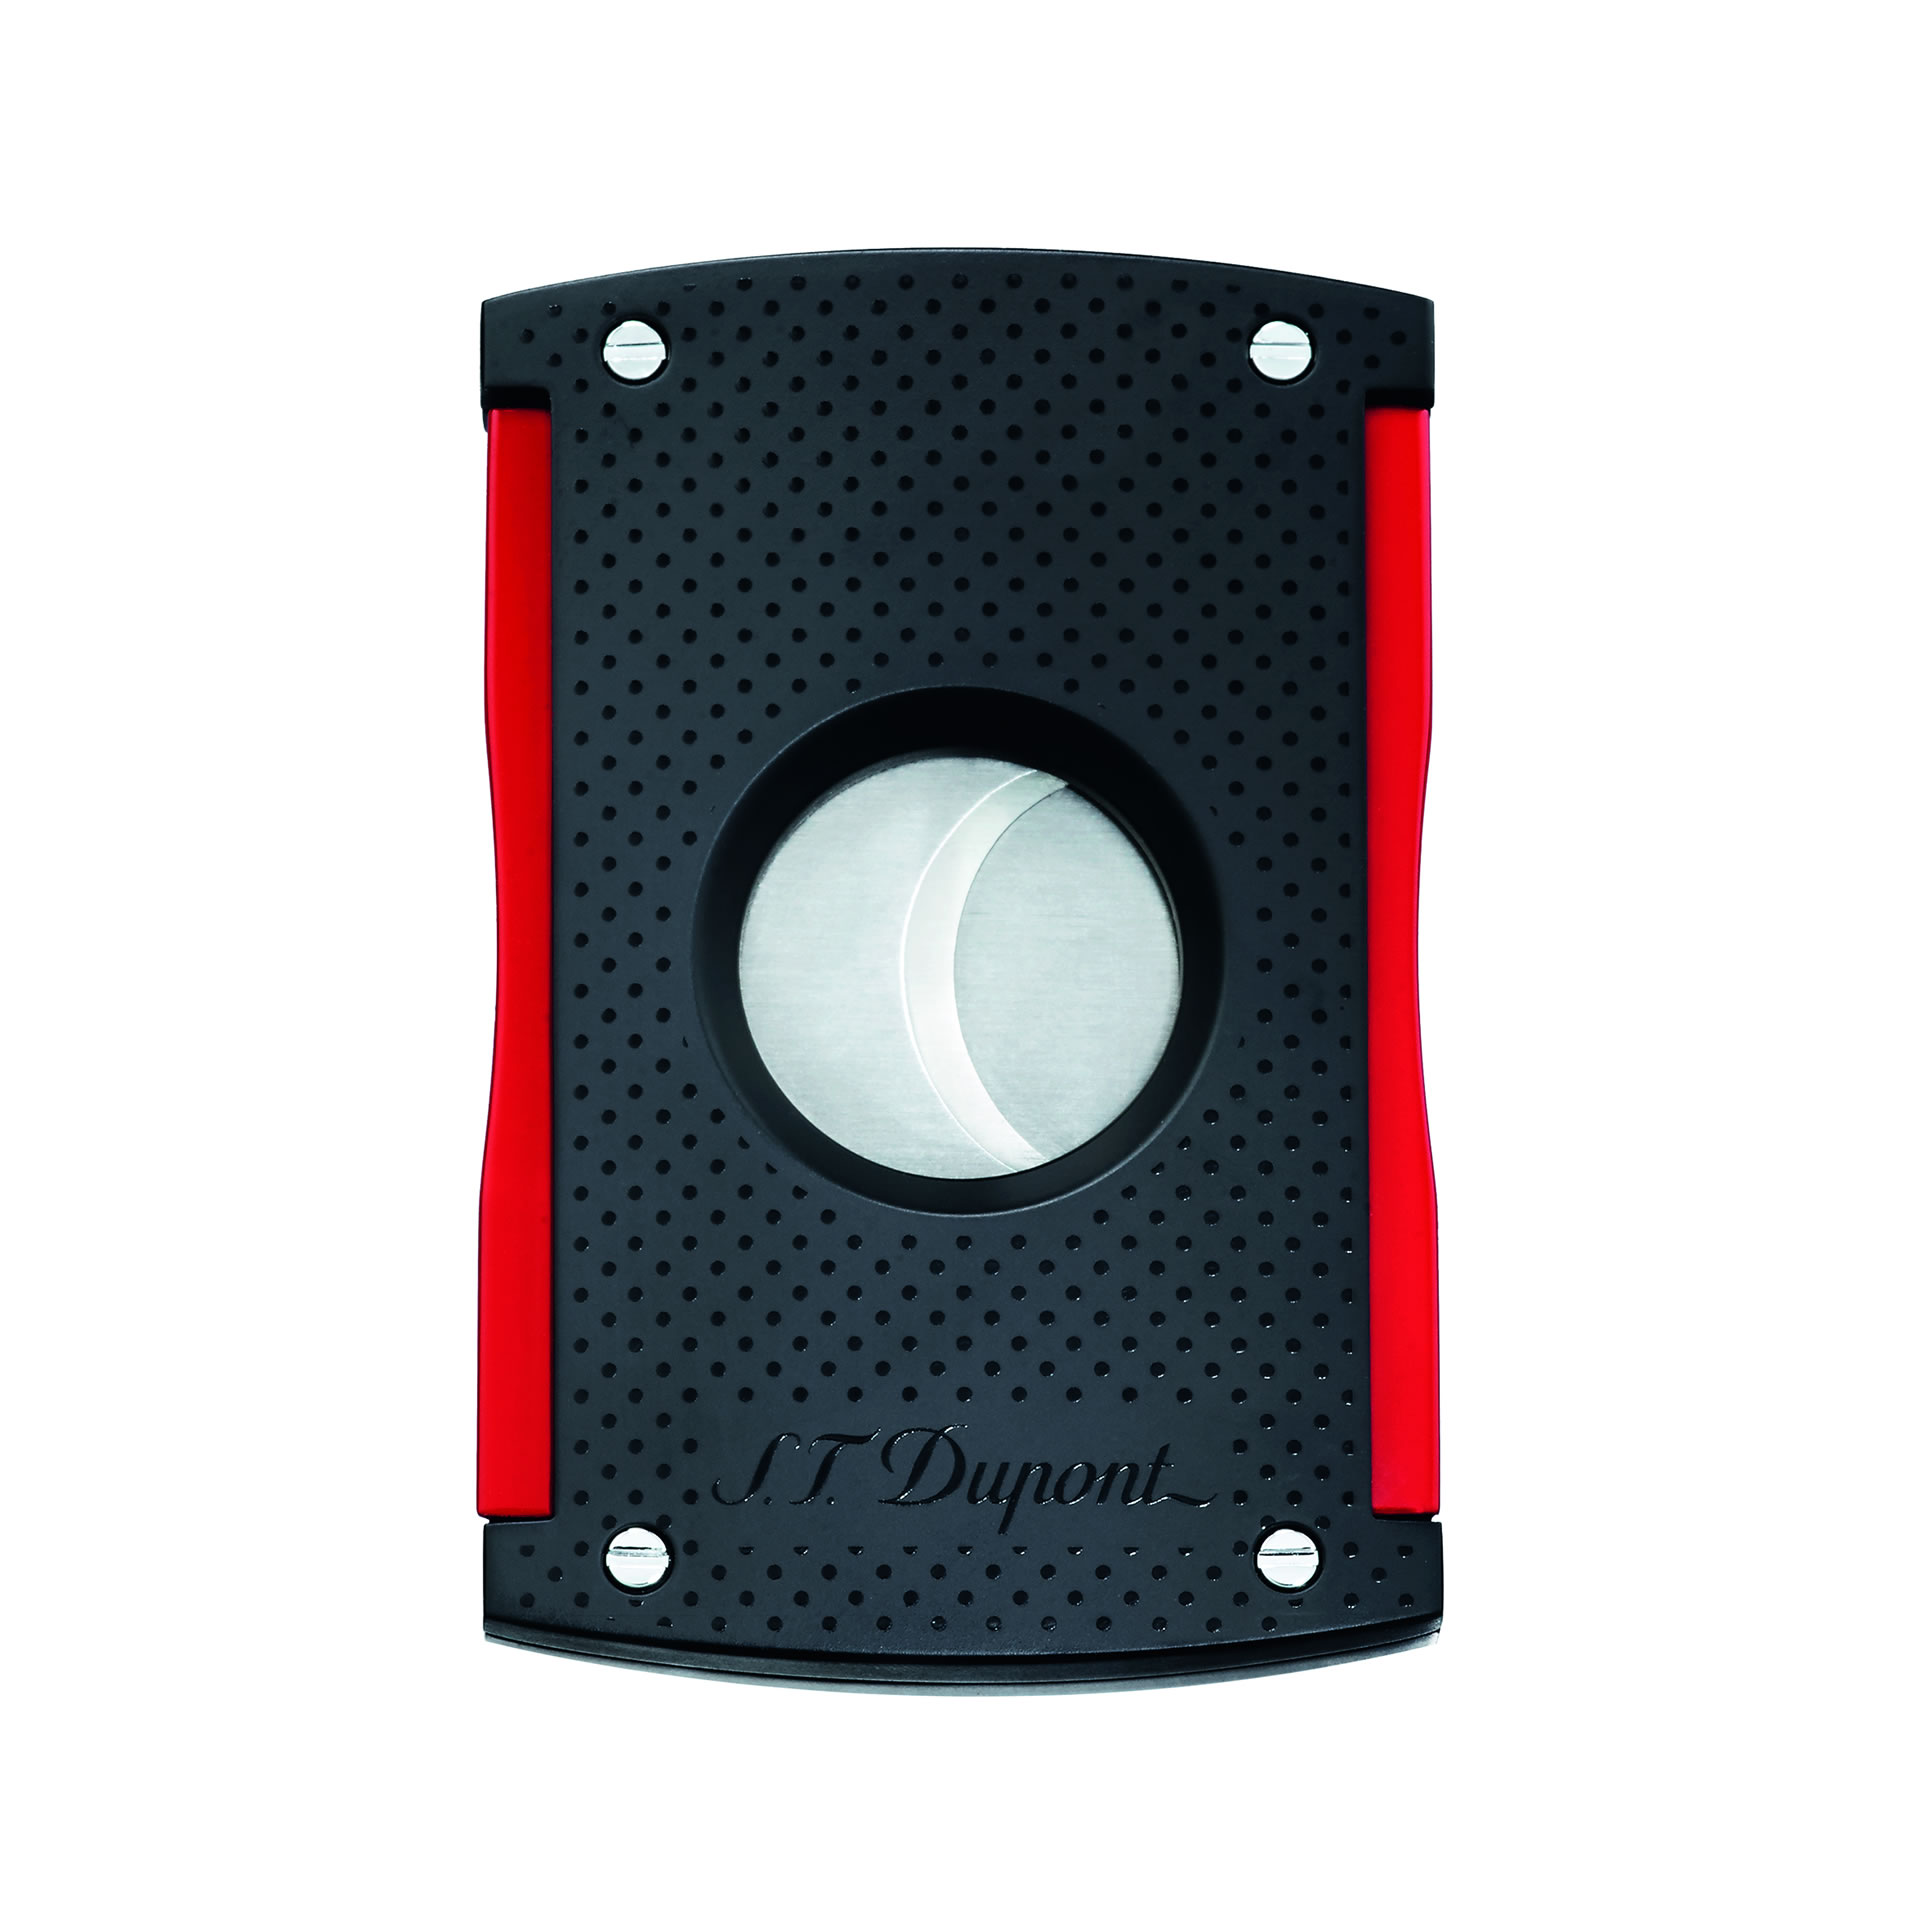 ST Dupont Maxijet Cigar Cutter - Punched Black and Red